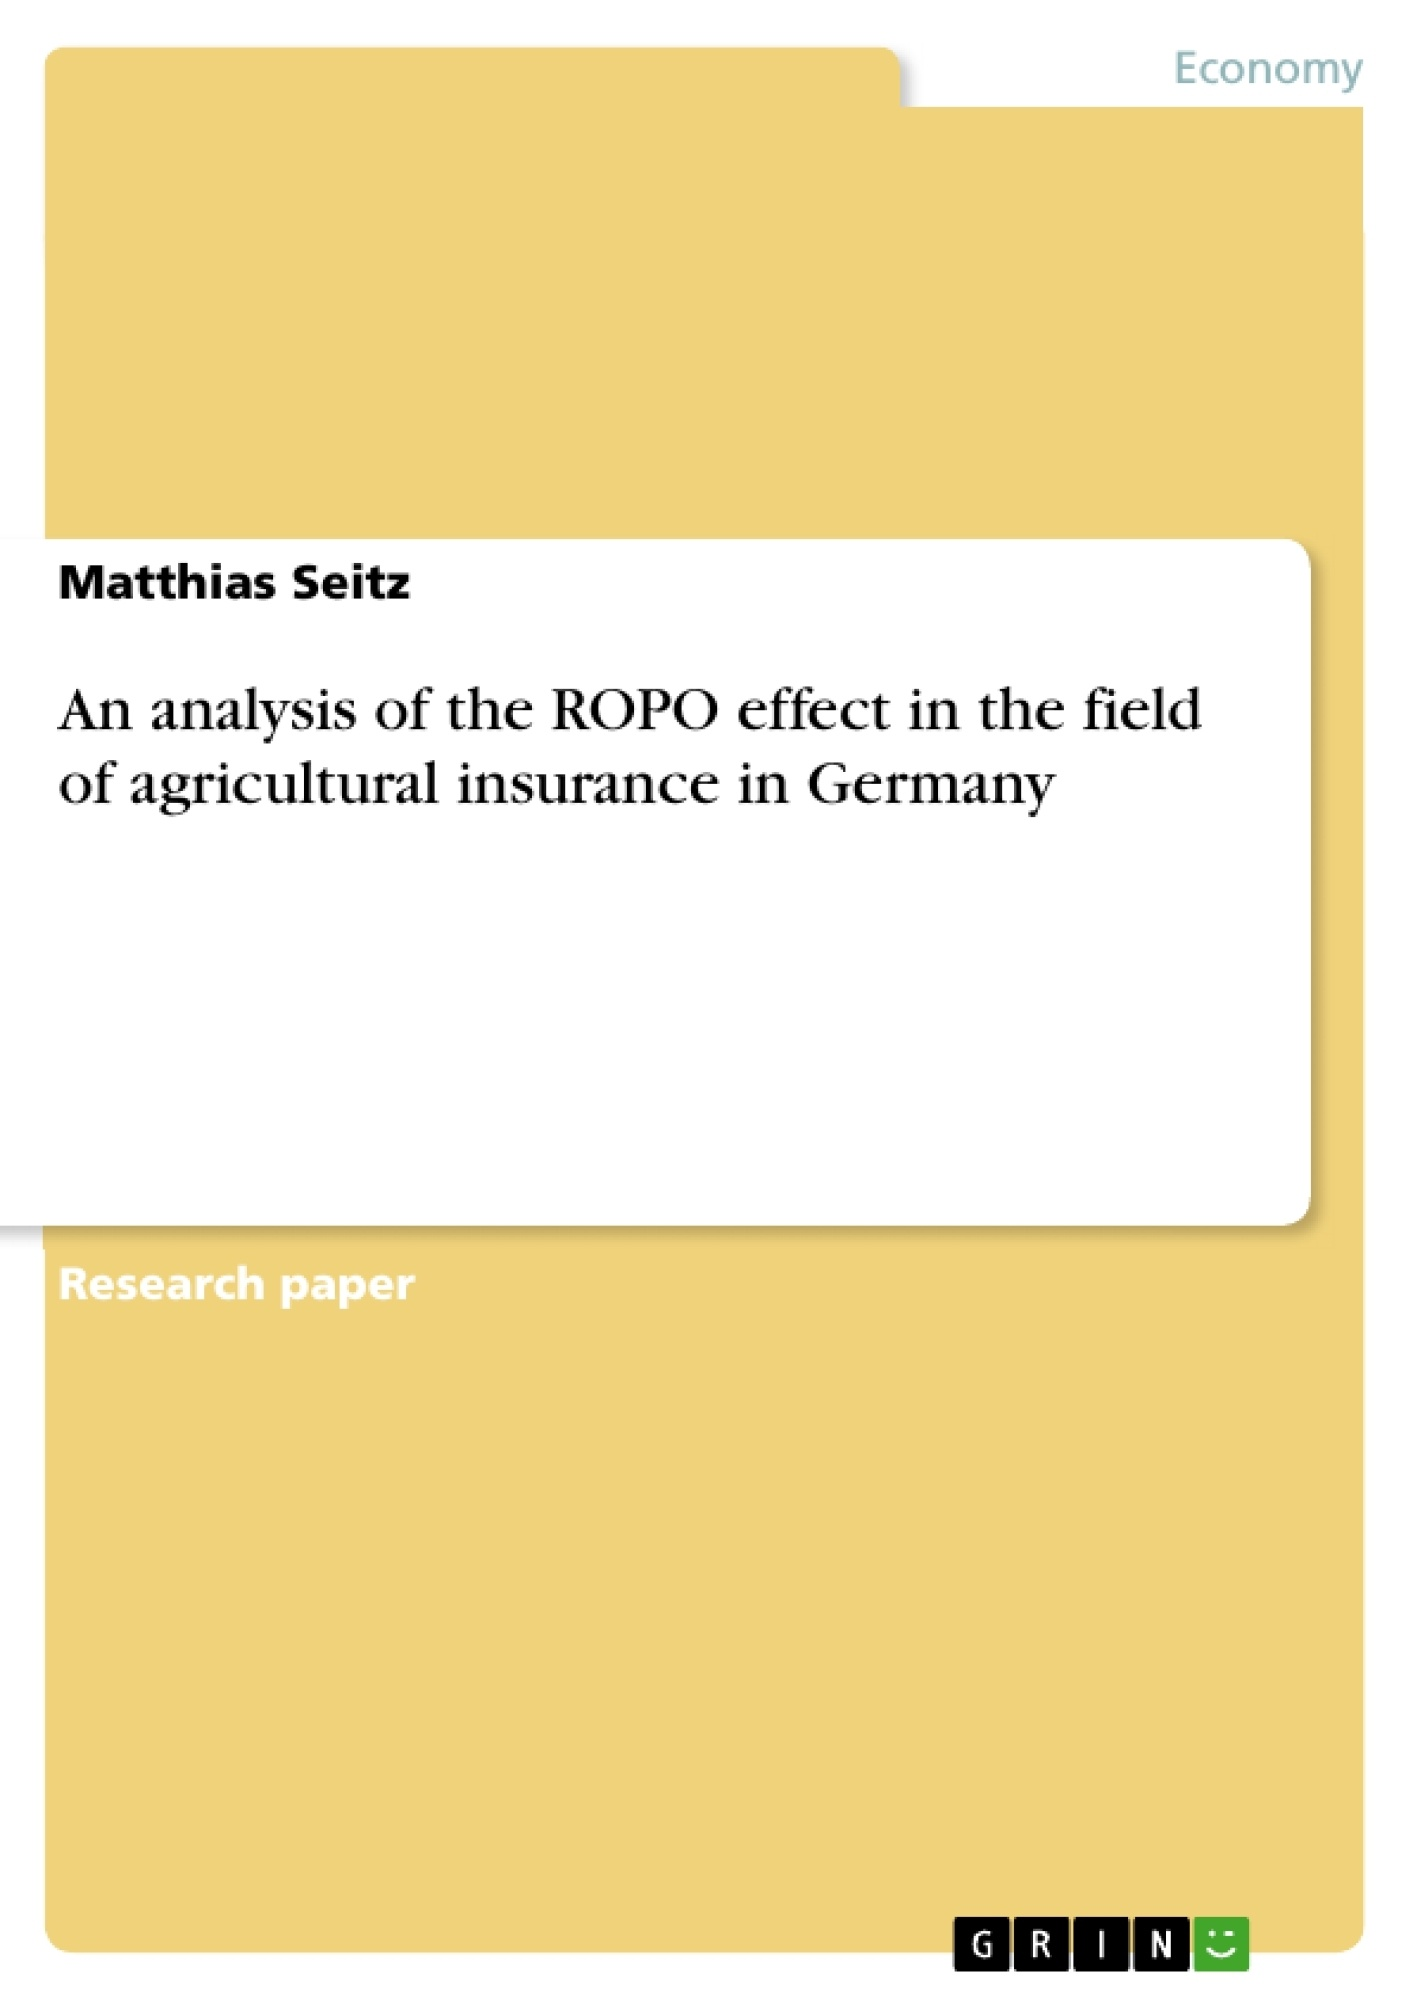 Title: An analysis of the ROPO effect in the field of agricultural insurance in Germany